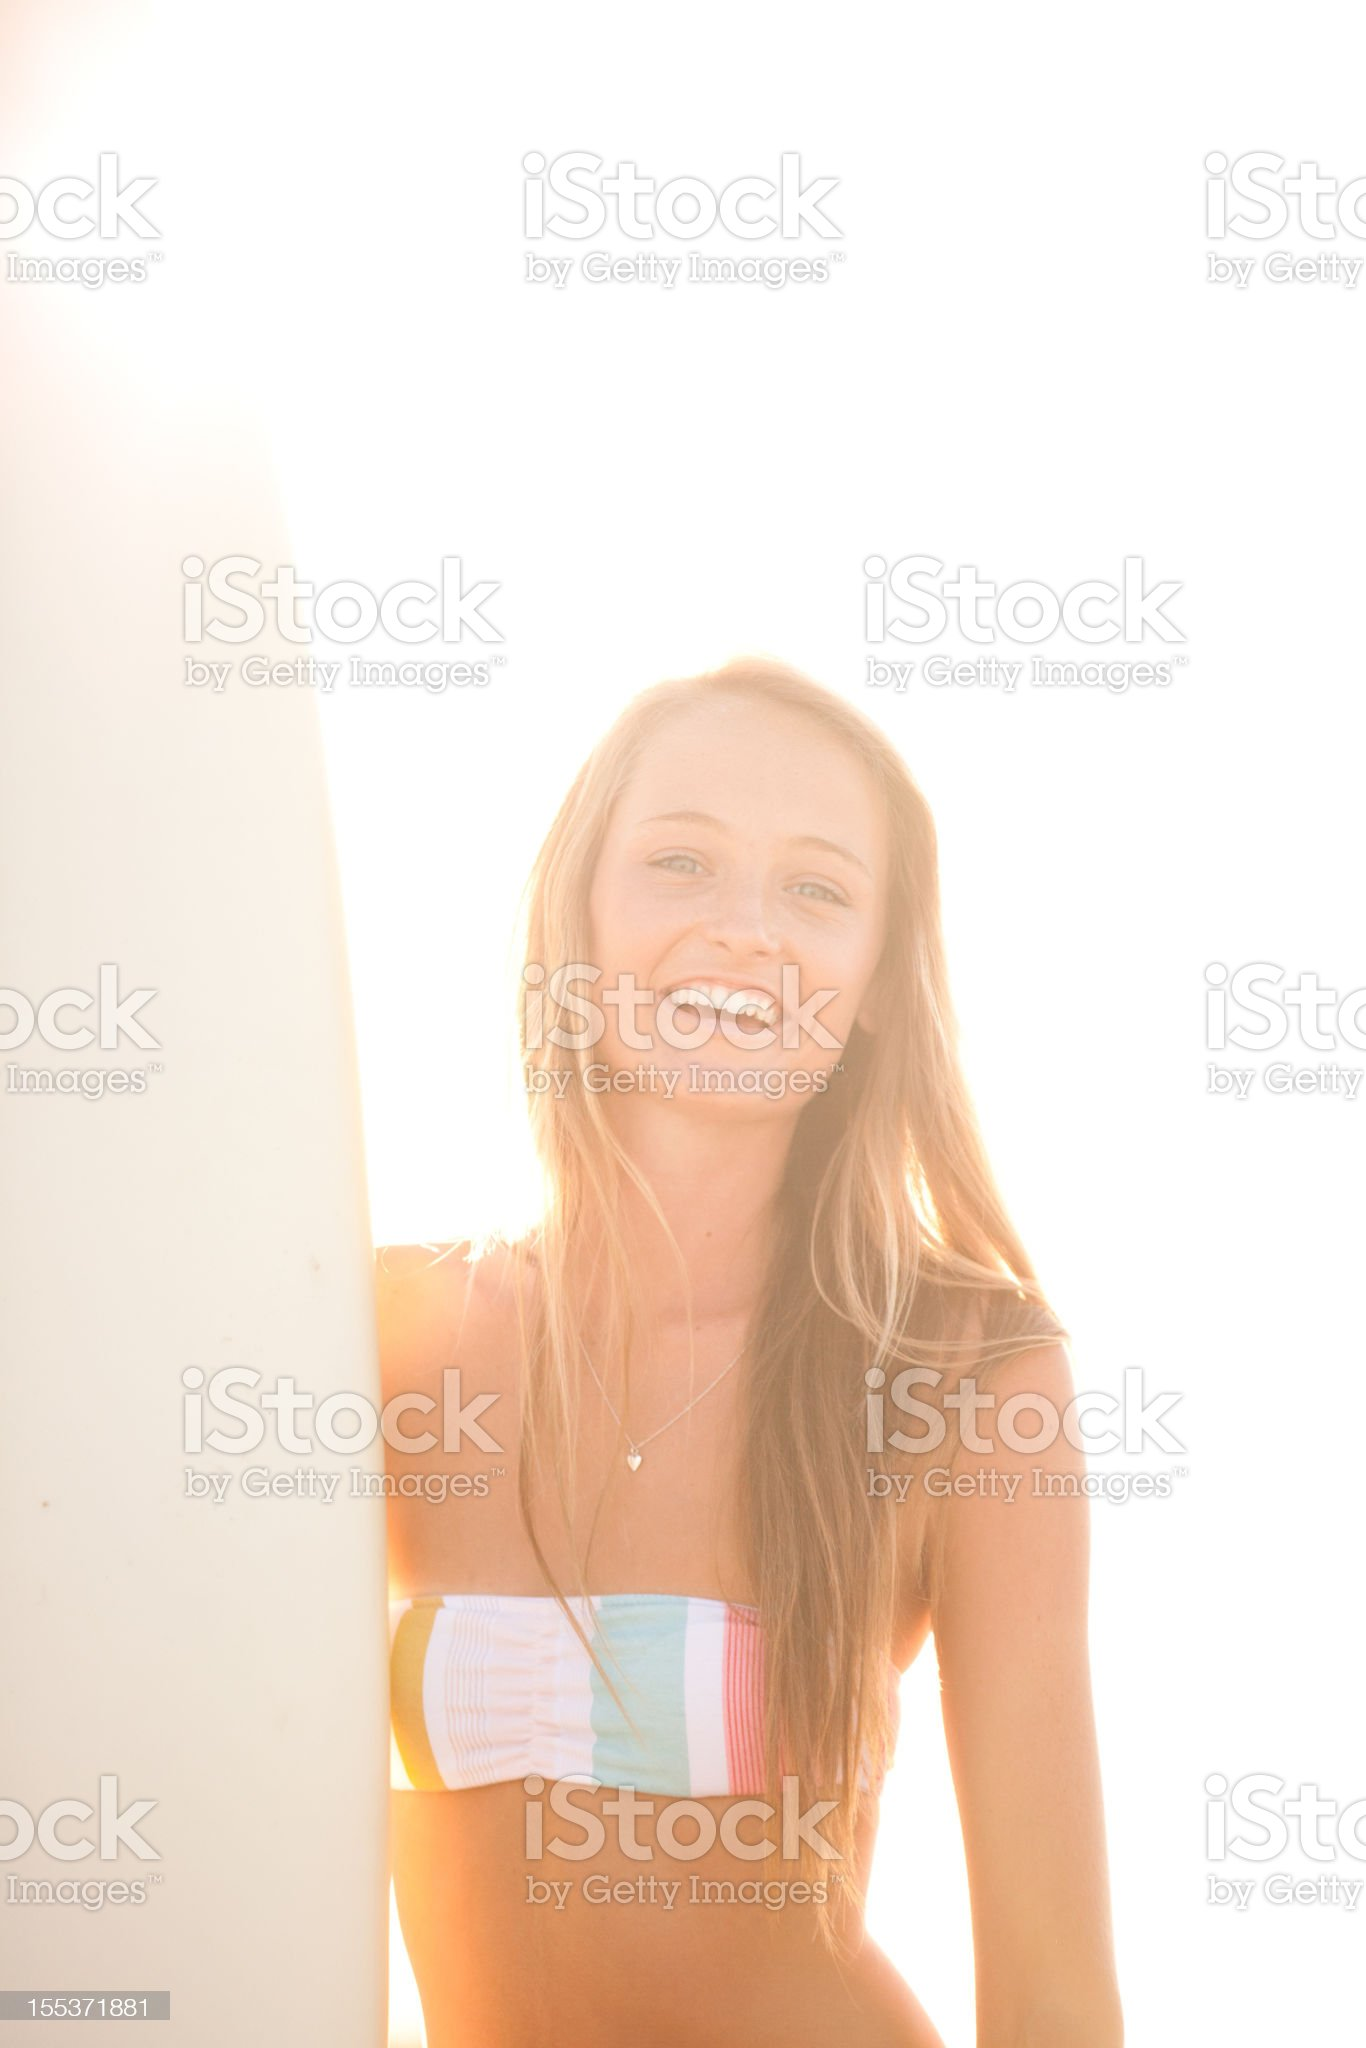 Portrait of a happy young surfer girl at the beach royalty-free stock photo